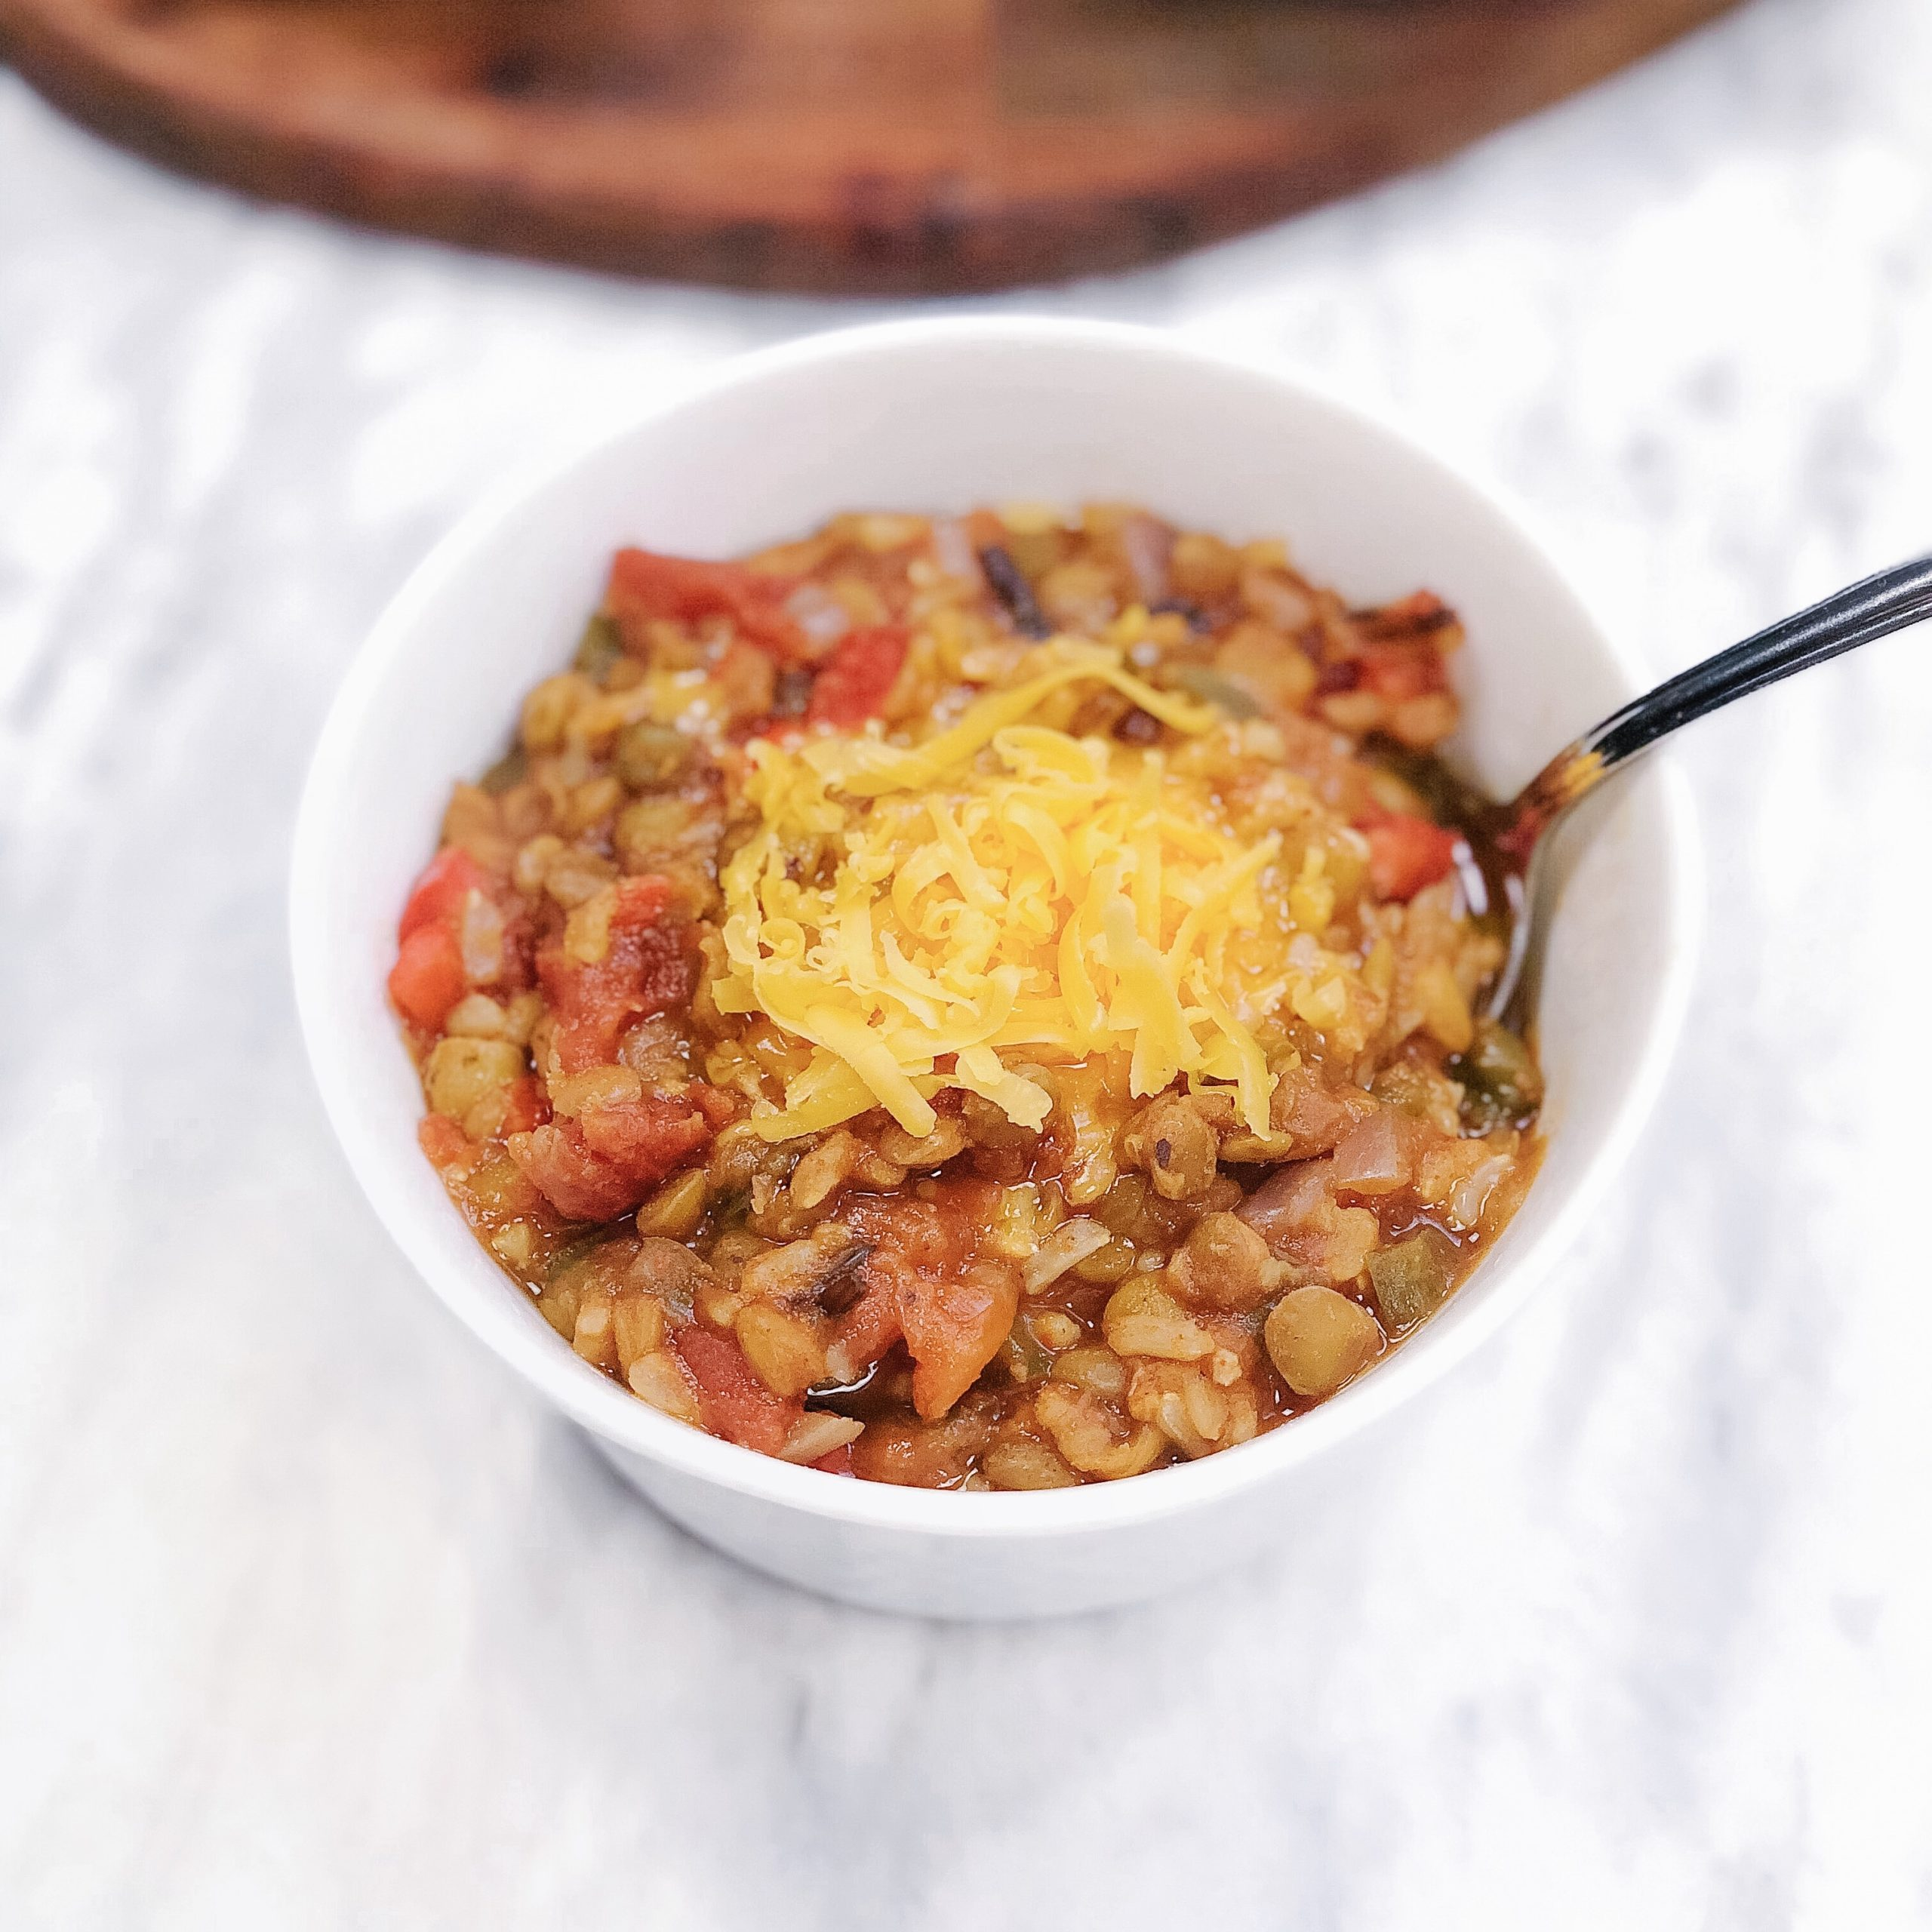 Instant Pot Lentil and Brown Rice Chili